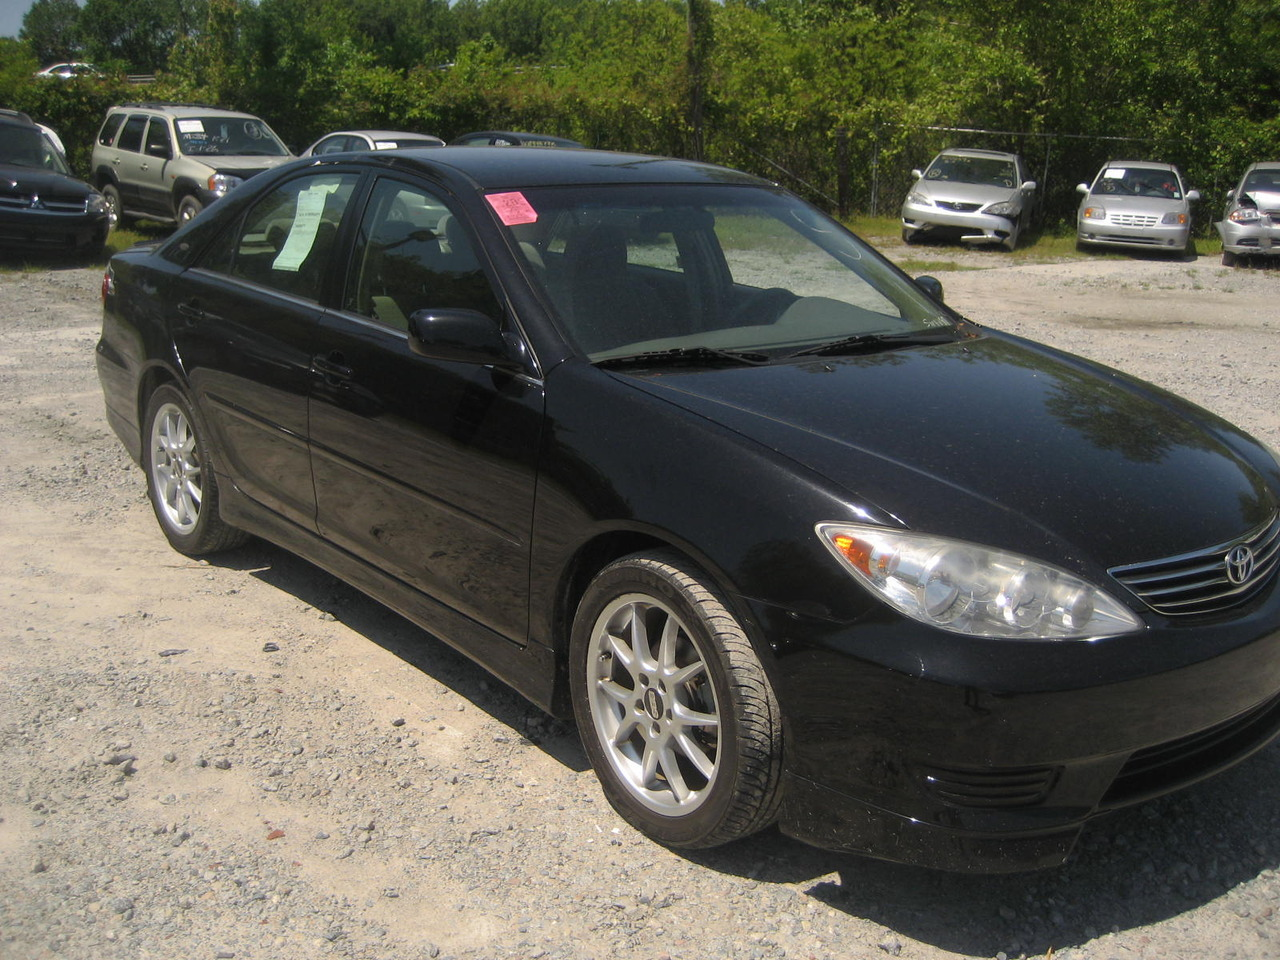 Toyota Camry Le Black 171 Toyota 171 Cars 171 Car Photos Share